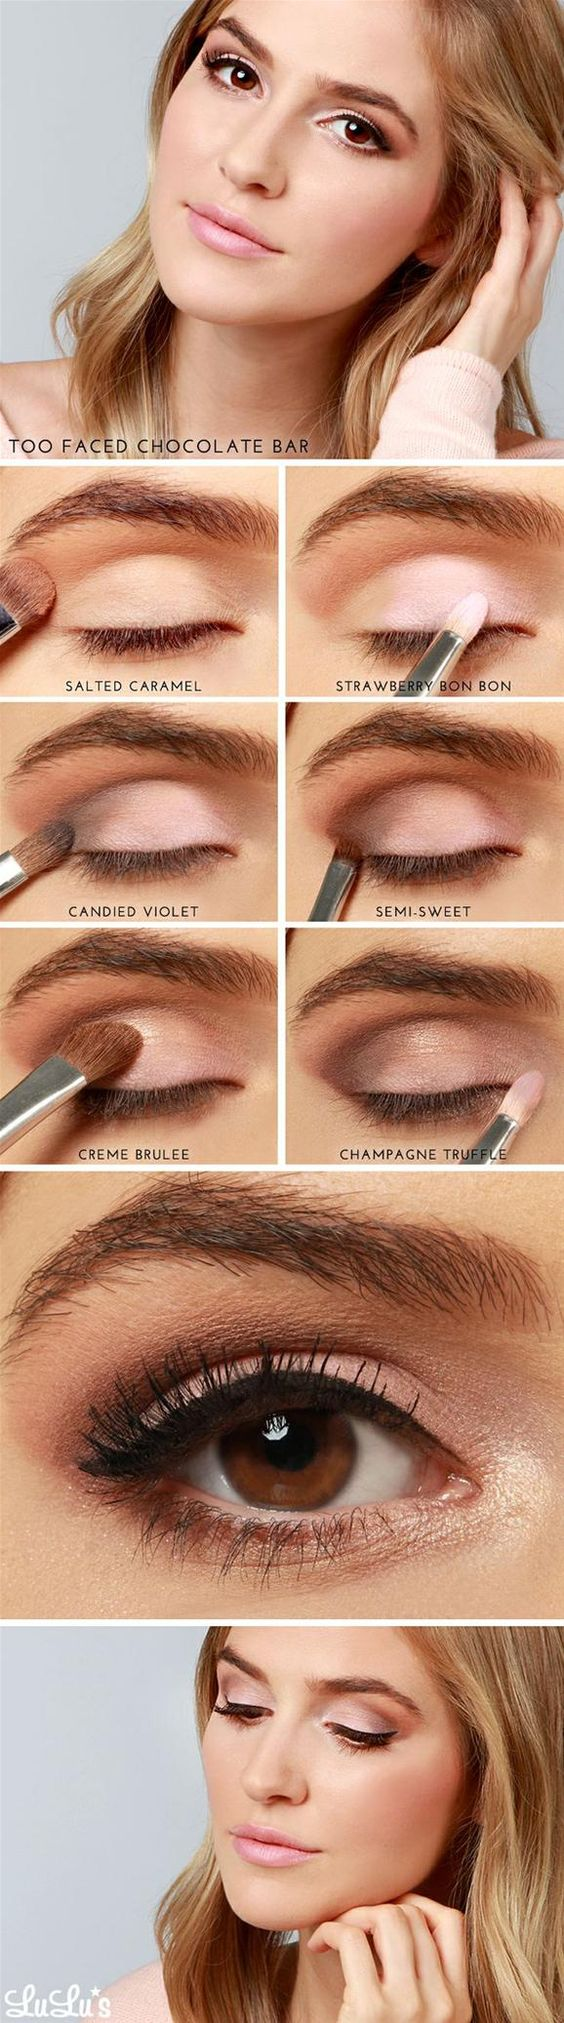 The best images about makeup ideas on pinterest smoky eye